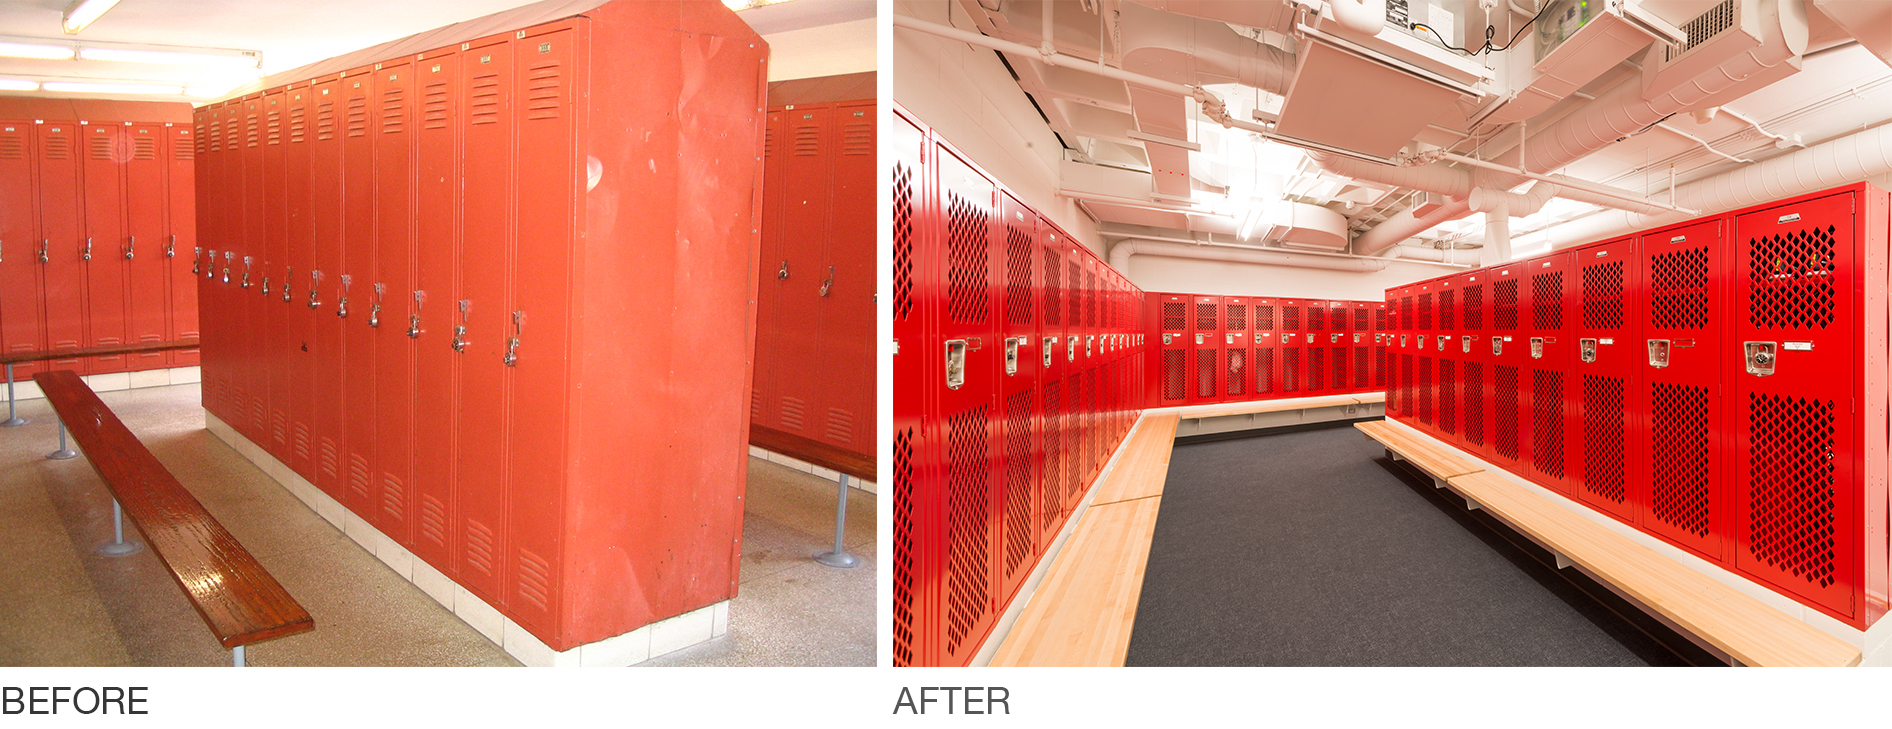 SMMA Renovation Worcester Polytechnic Institute (WPI) locker rooms